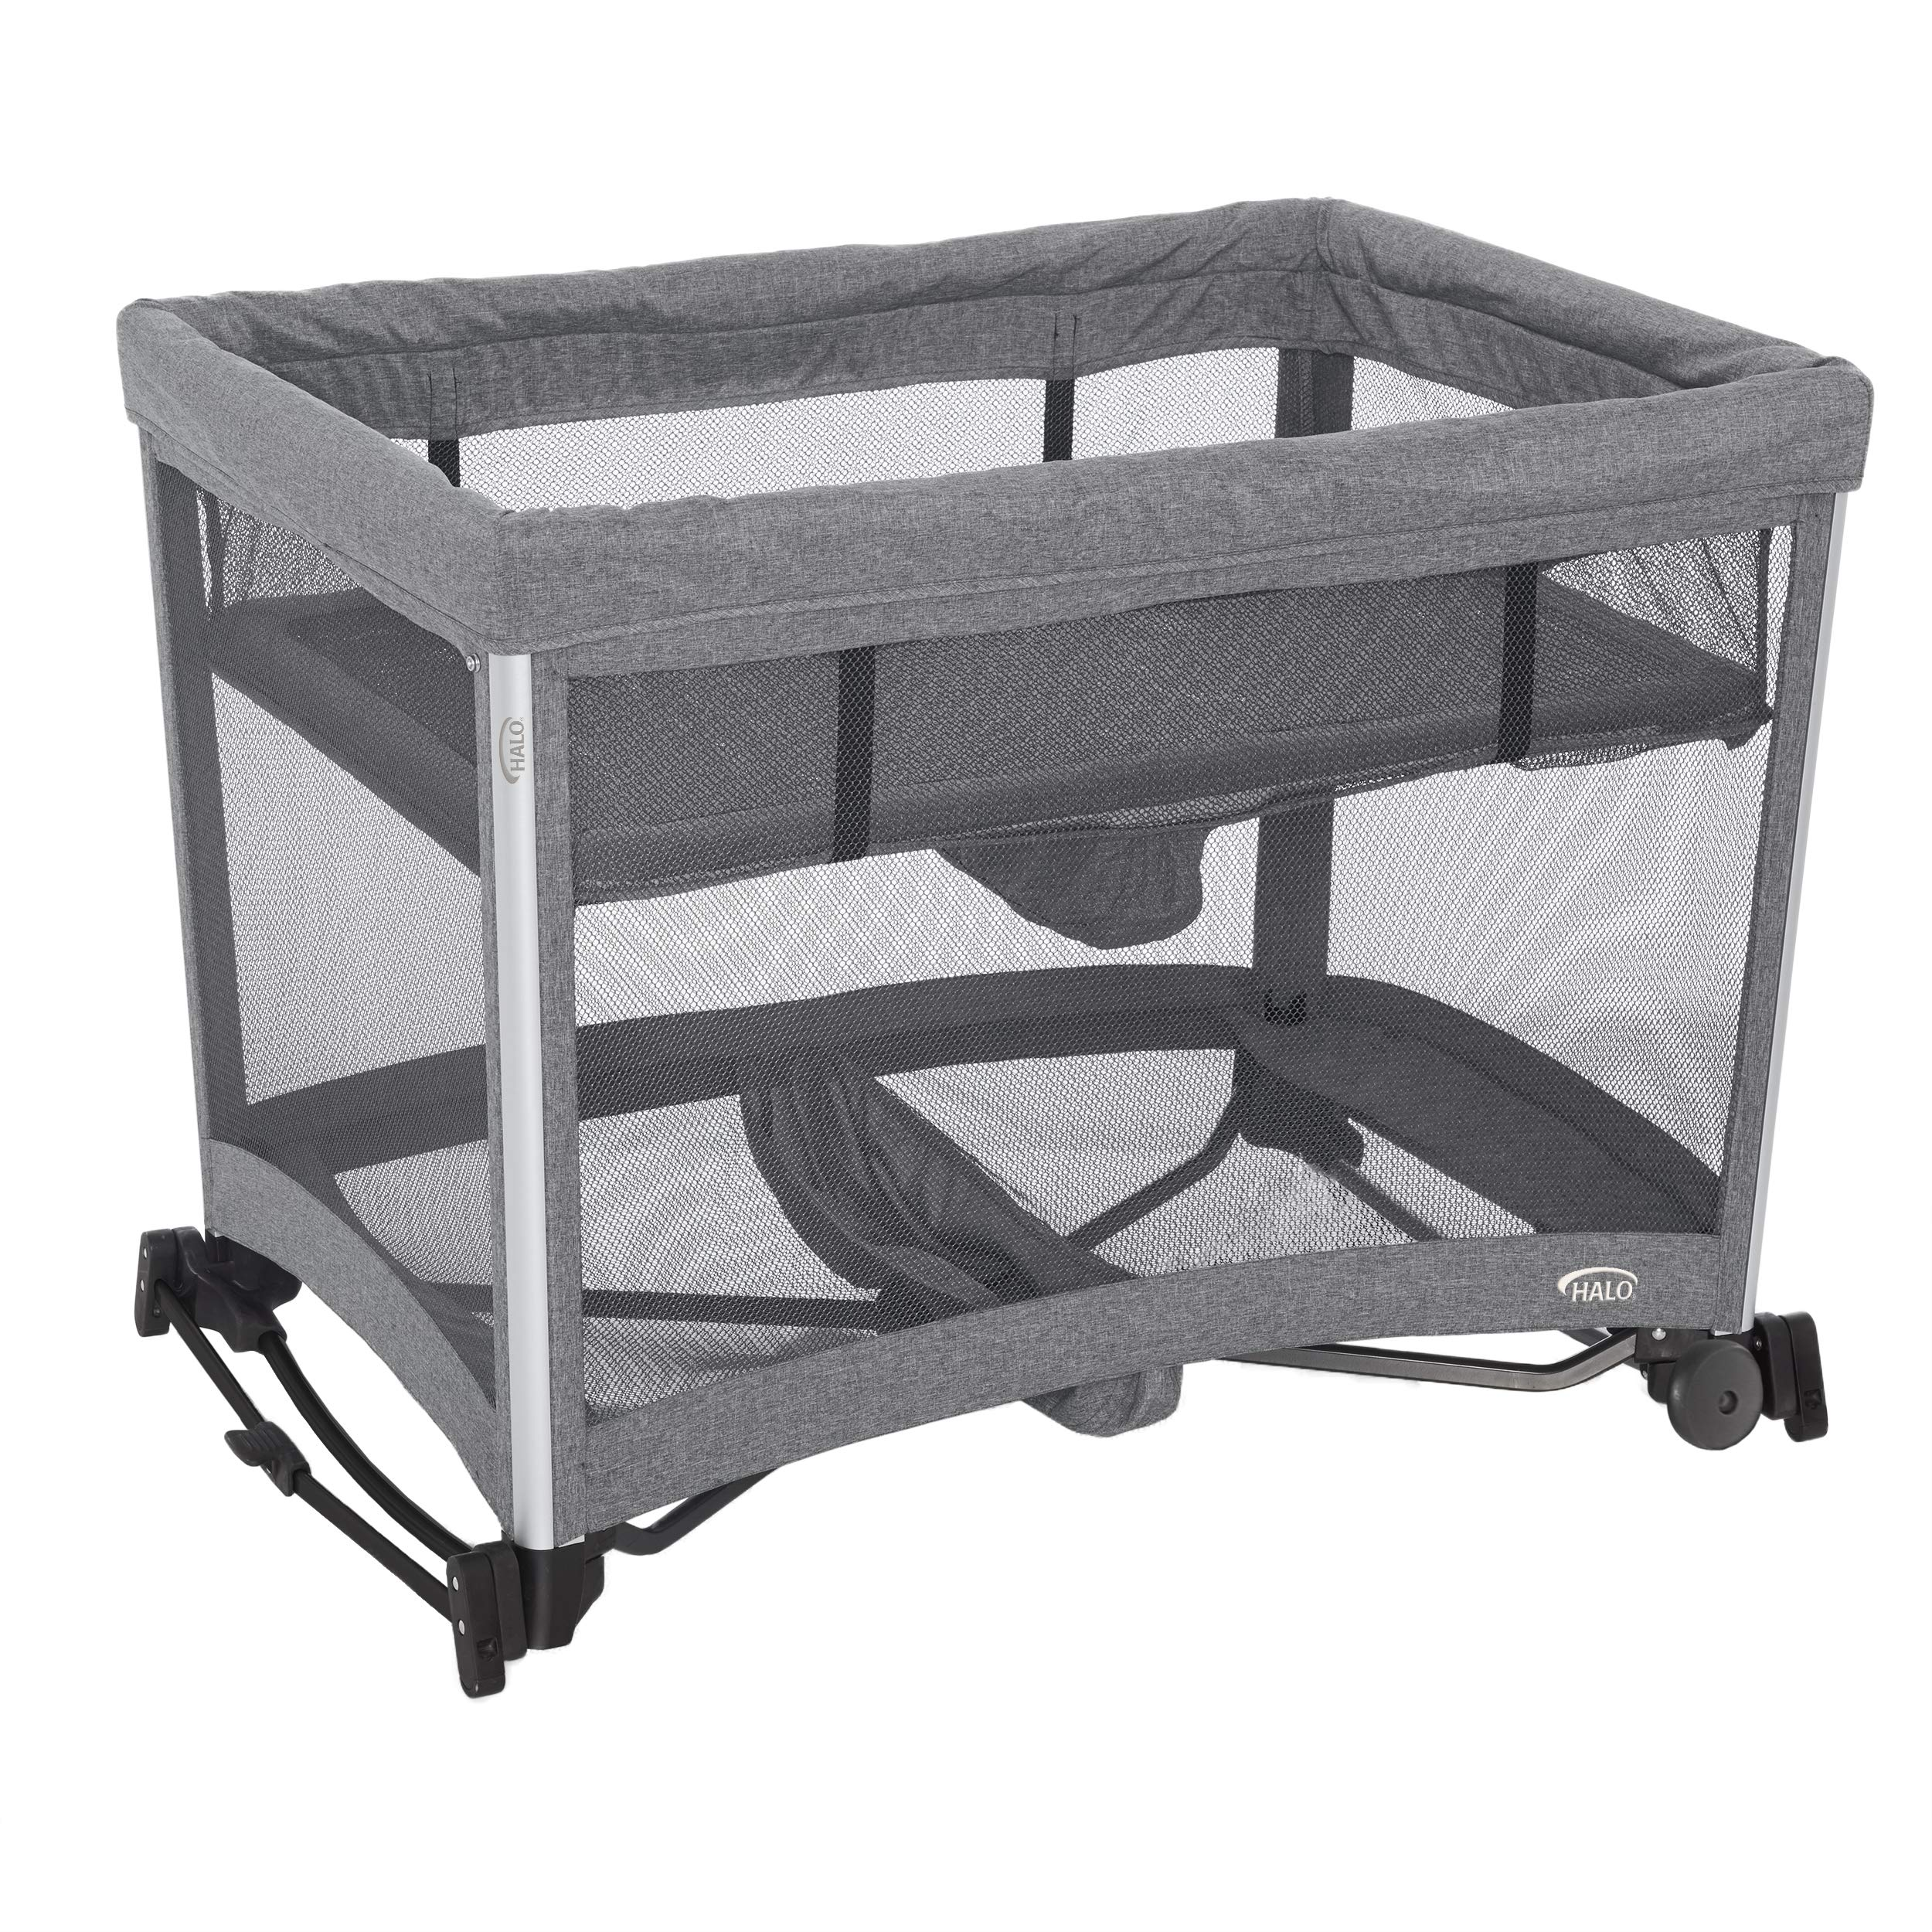 HALO 3-in-1 DreamNest Rocking Bassinet, Portable Crib, Travel Cot with Breathable Mesh Mattress by Halo